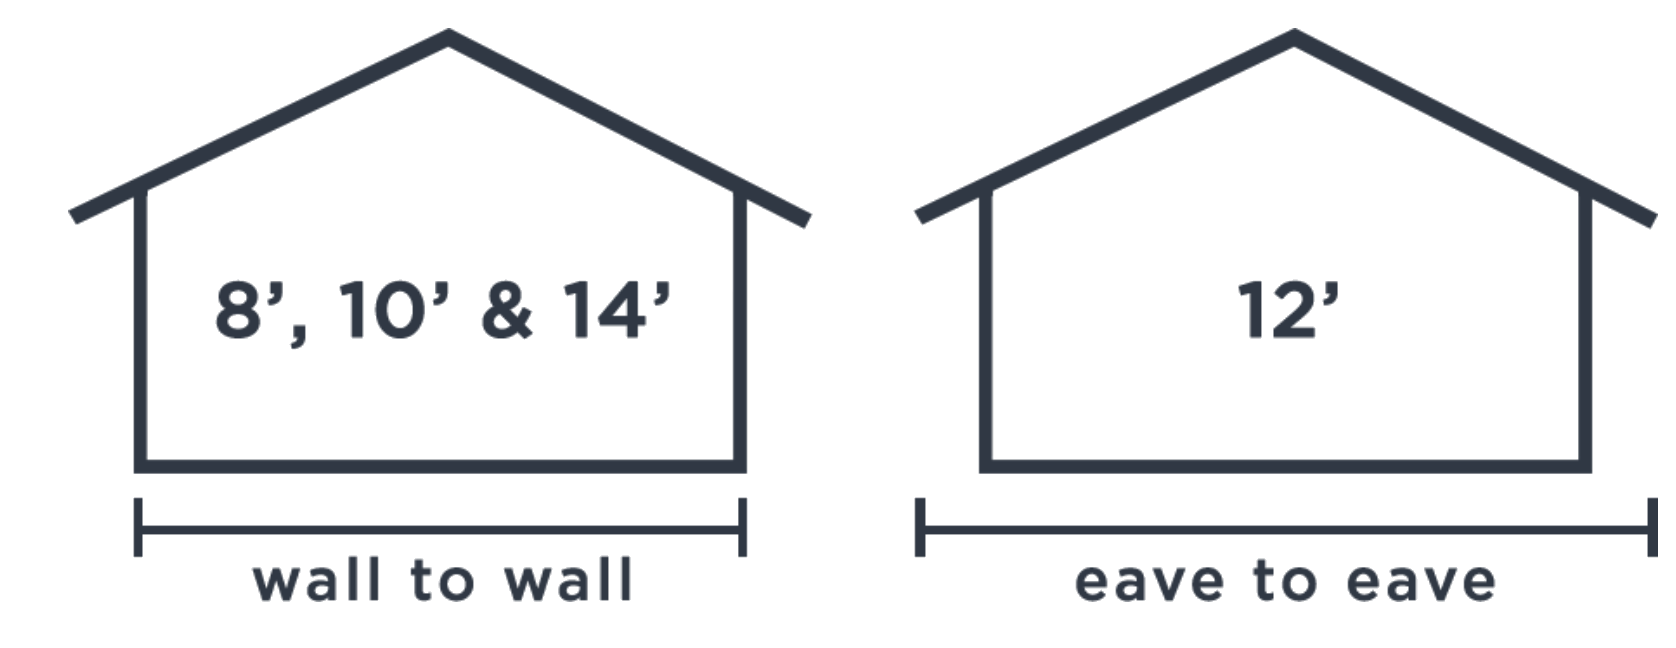 shed sizes.png